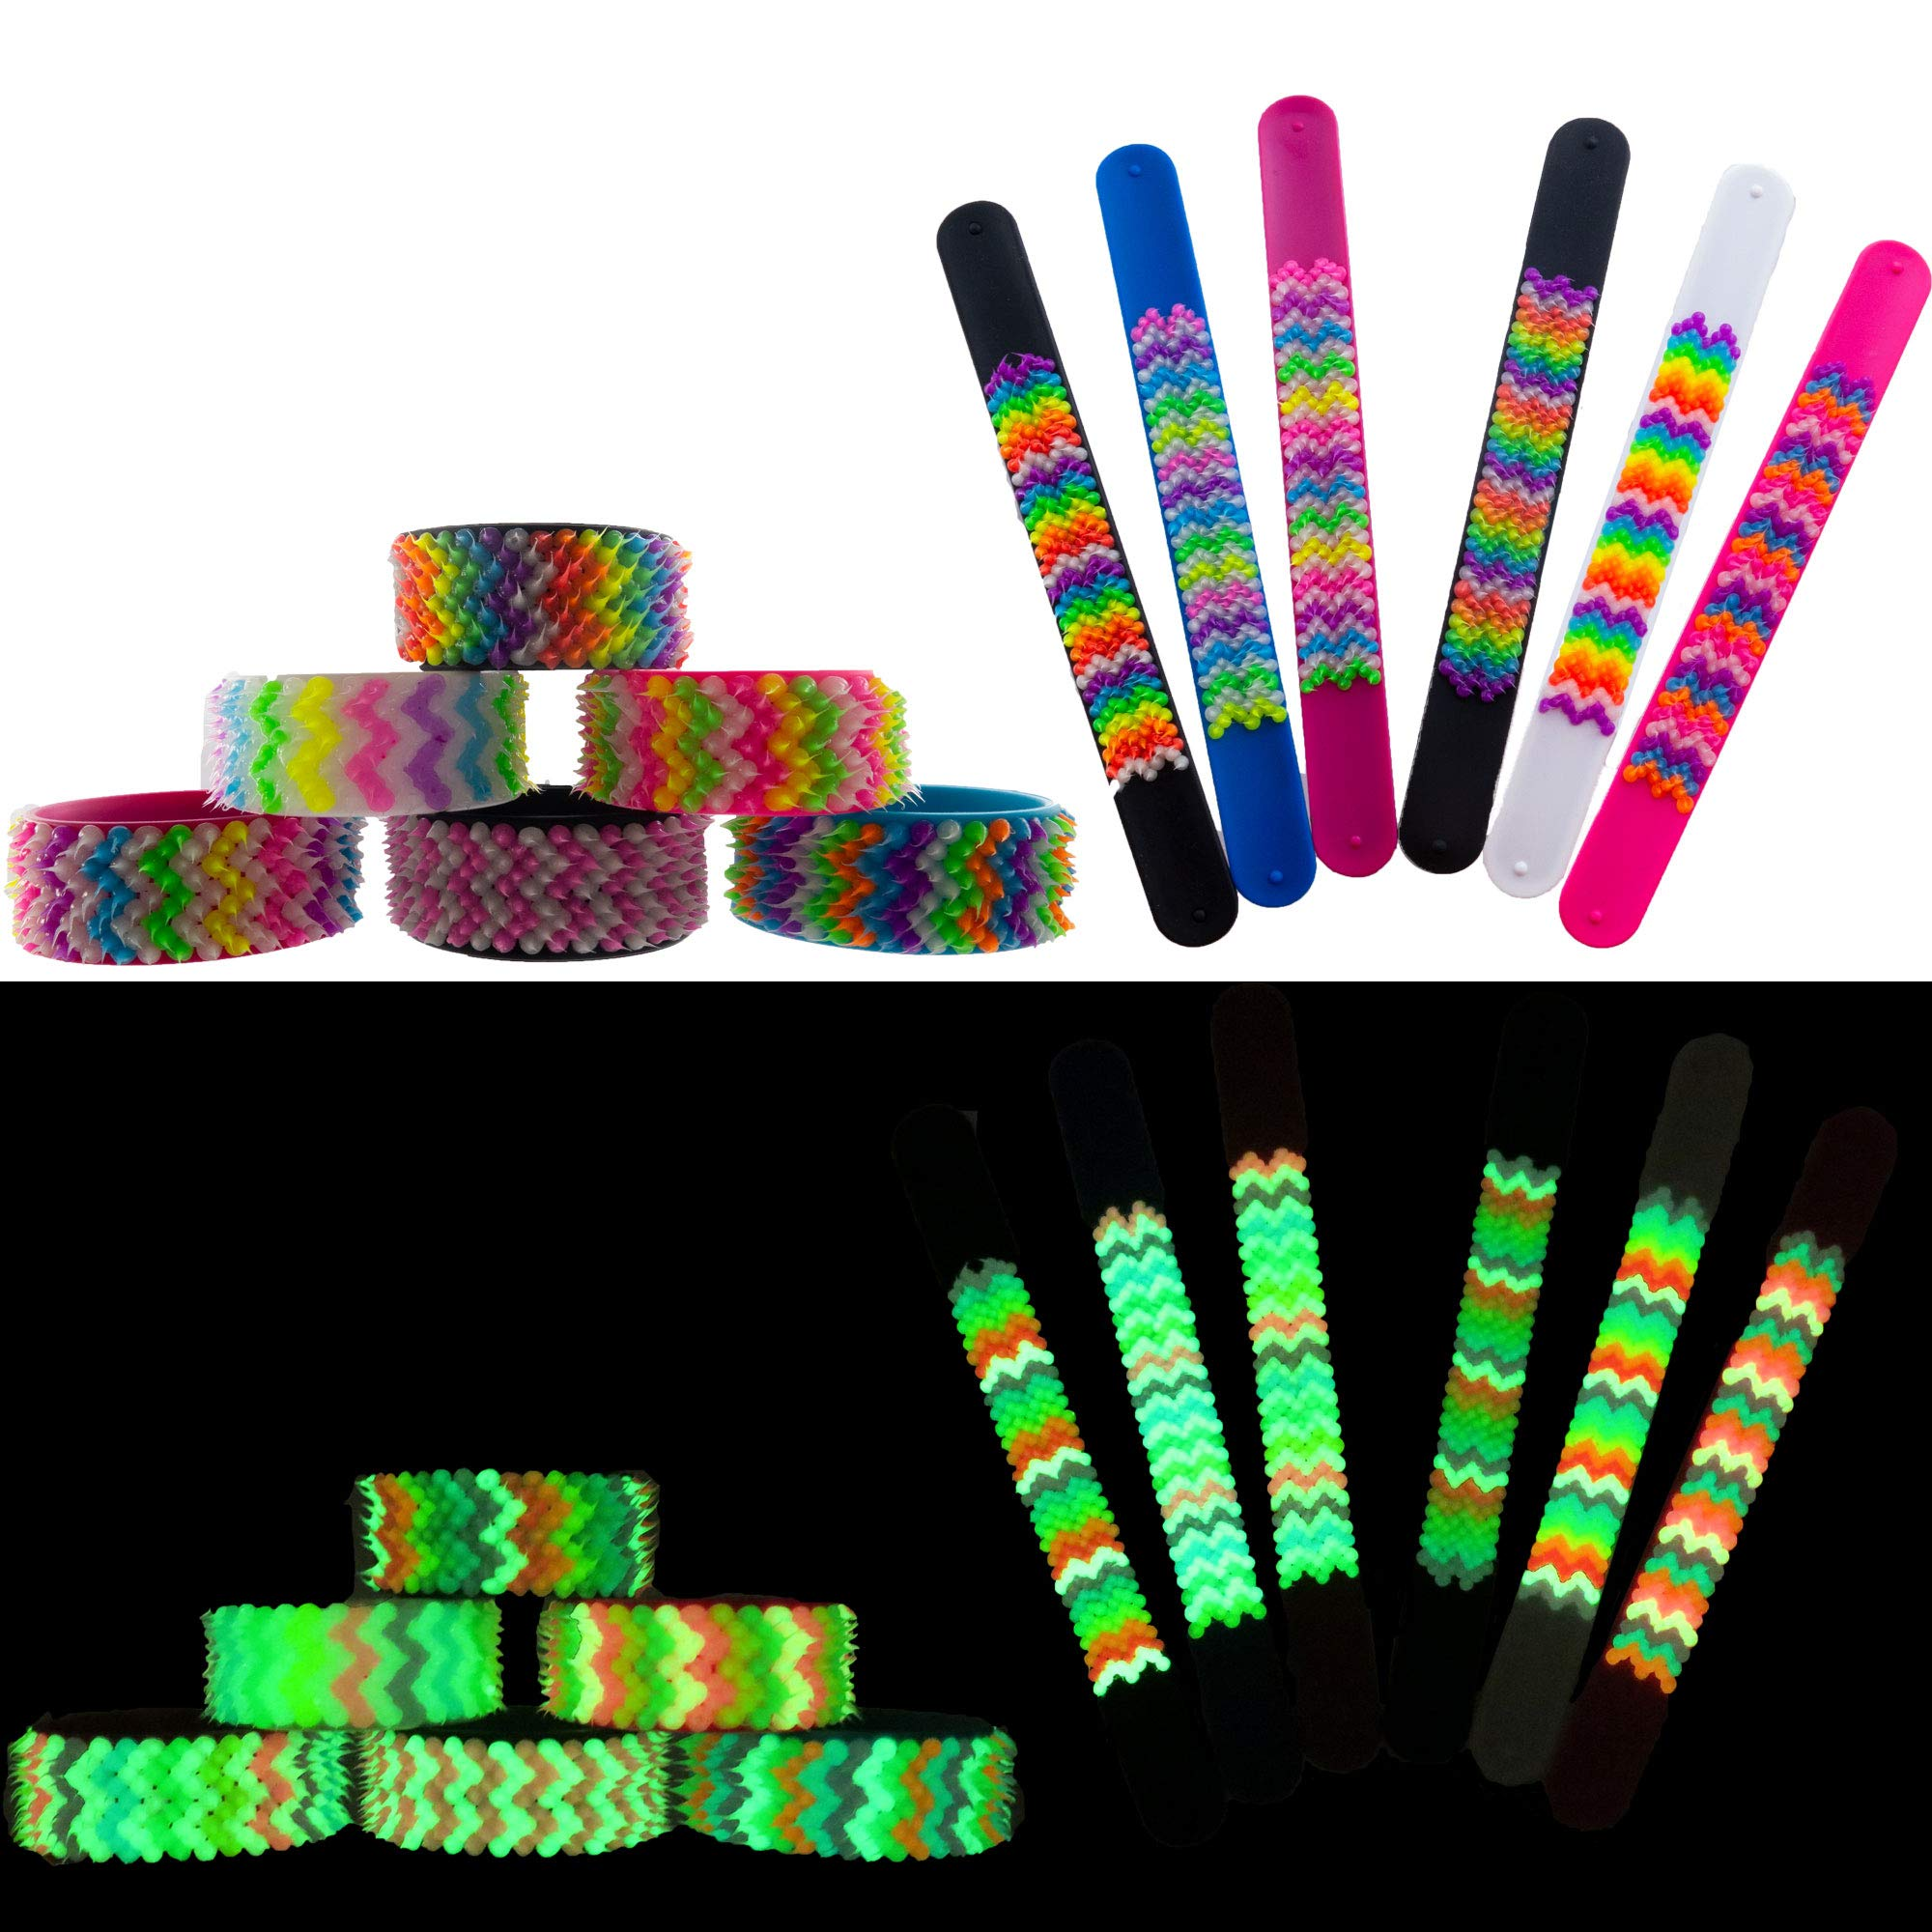 Glow in The Dark Slap Bracelets for Boys Girls Kids 12 PCs – Silicone Slap On Wristbands with Fluorescent and UV - Black Light Reactive Multicolored Spikes – Great Birthday Party Favors - Supplies